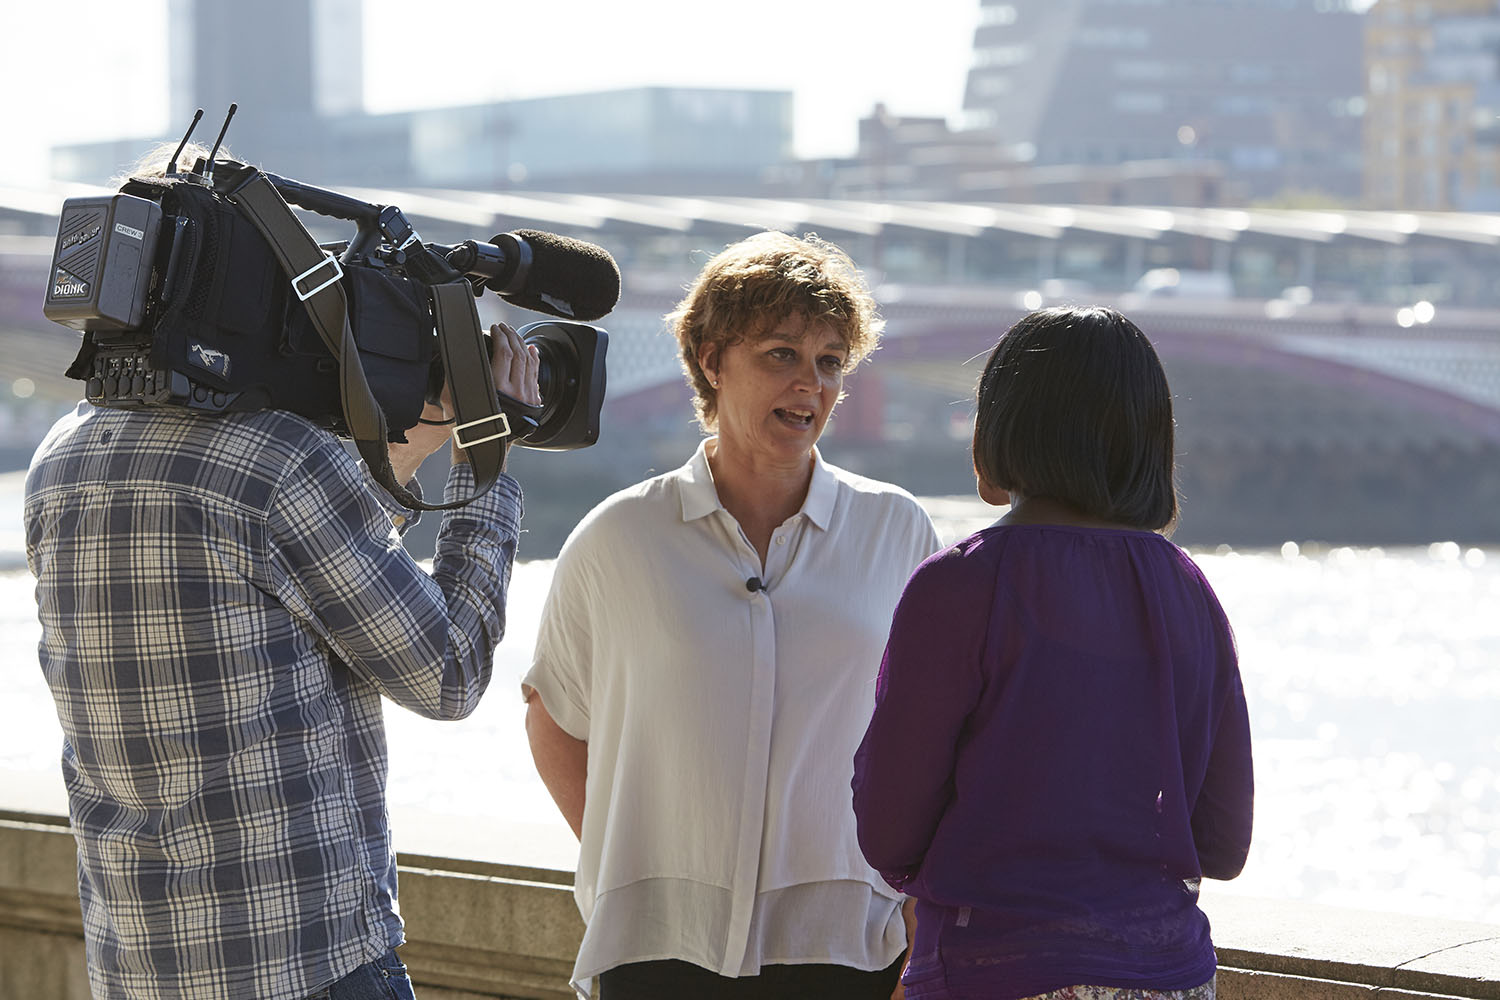 Artichoke's Director, Helen Marriage wearing a white shirt and being interviewed on camera by a woman with dark hair in a purple top